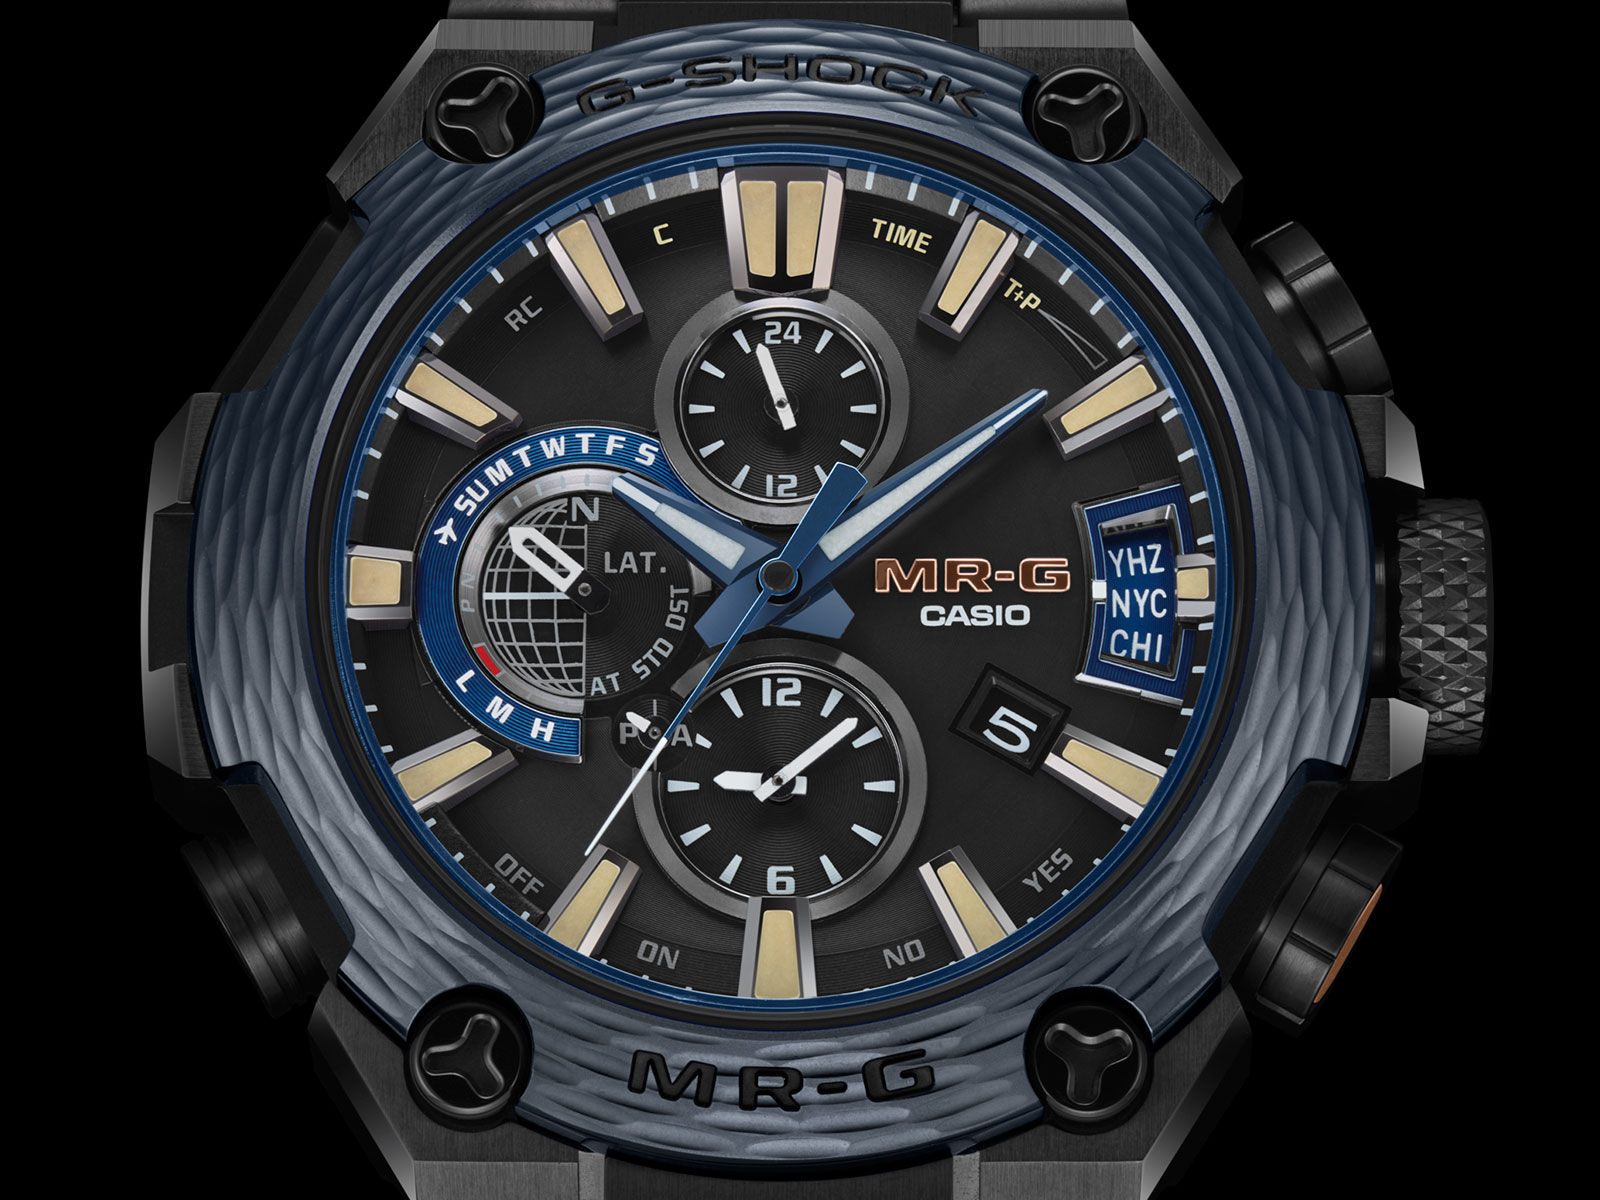 images Introducing The G-Shock MR-G: The Future Of Advanced Luxury Timepieces